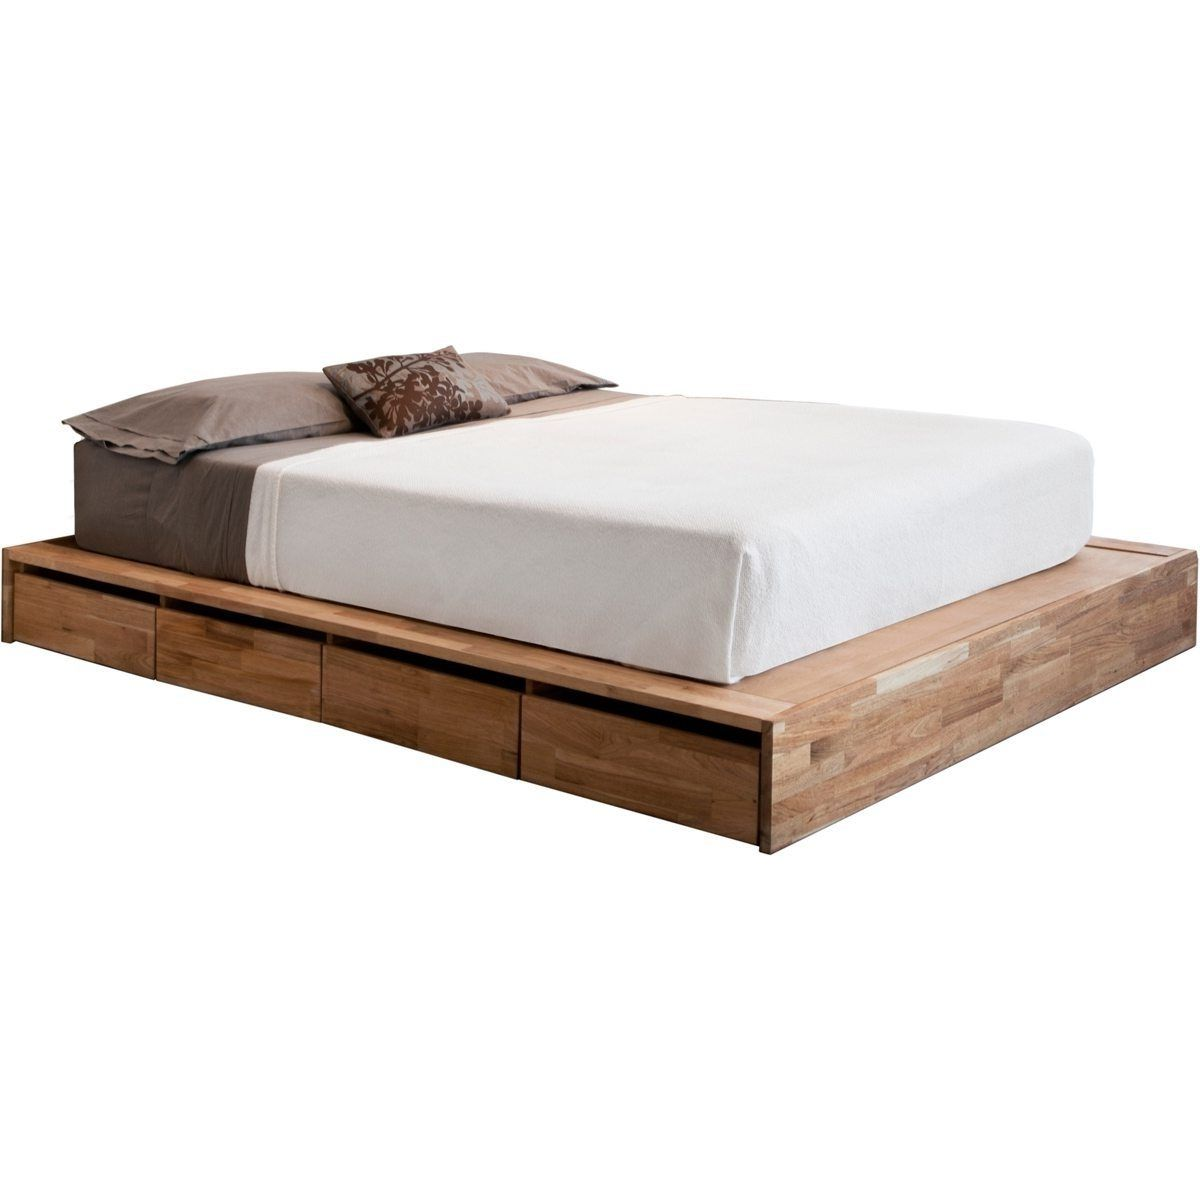 Low Bed Frame Low Bed Frames With Storage Bed Create Low Twin Bed Low Bed Frame Low Platform Bed Platform Bed With Storage